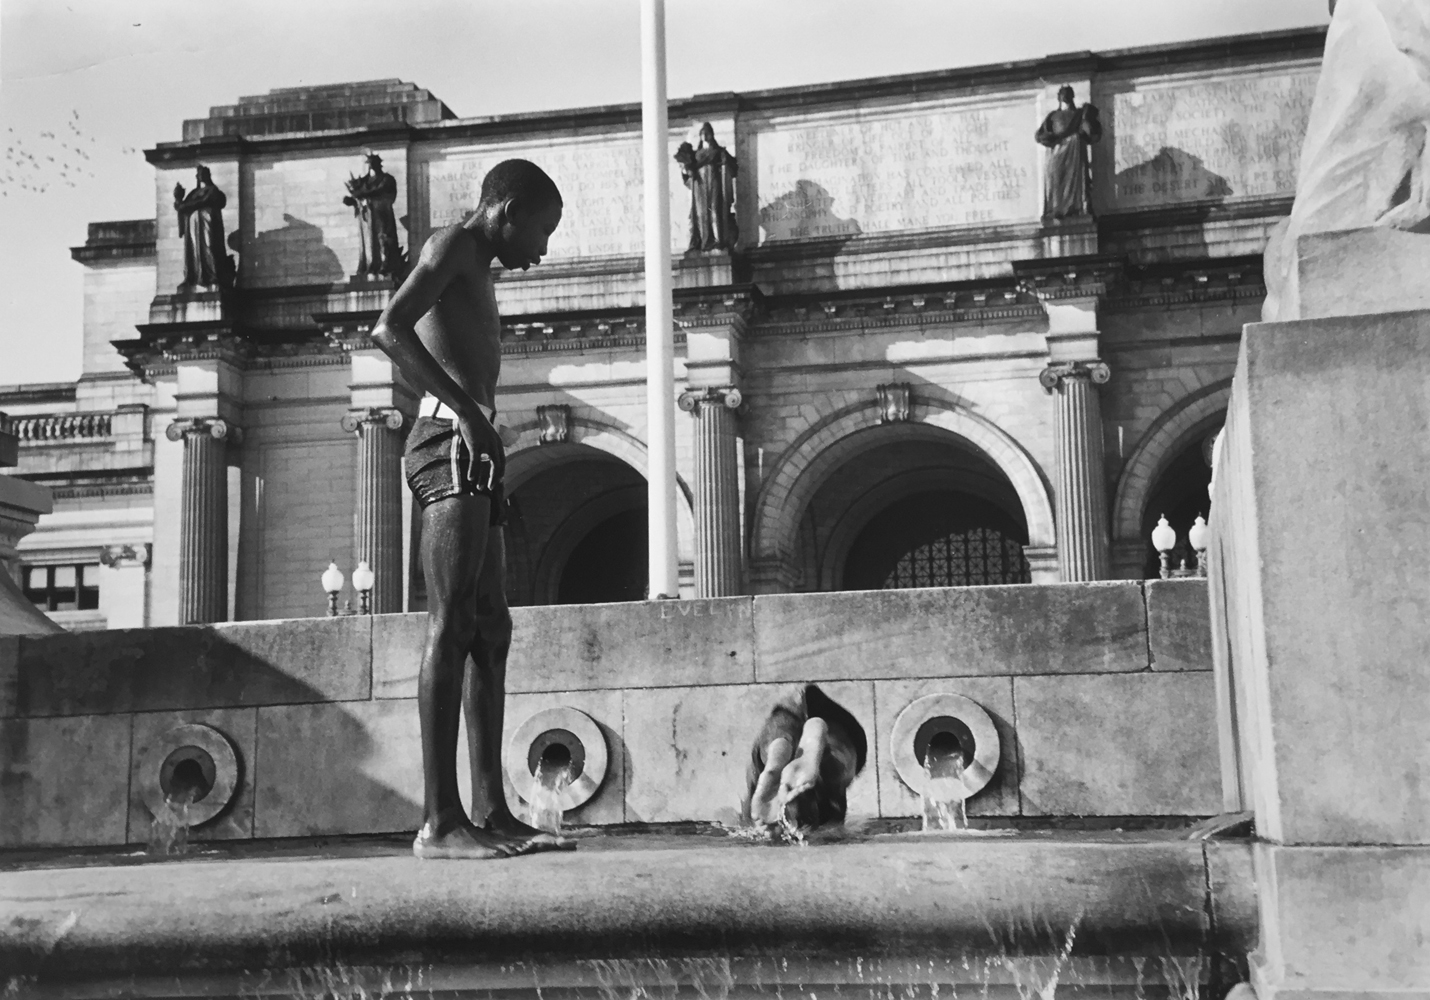 Marion Post Wolcott, Swimming in fountain across from Union Station, Washington, D.C., 1938, gelatin silver print, 11 x 14 inches, price on request